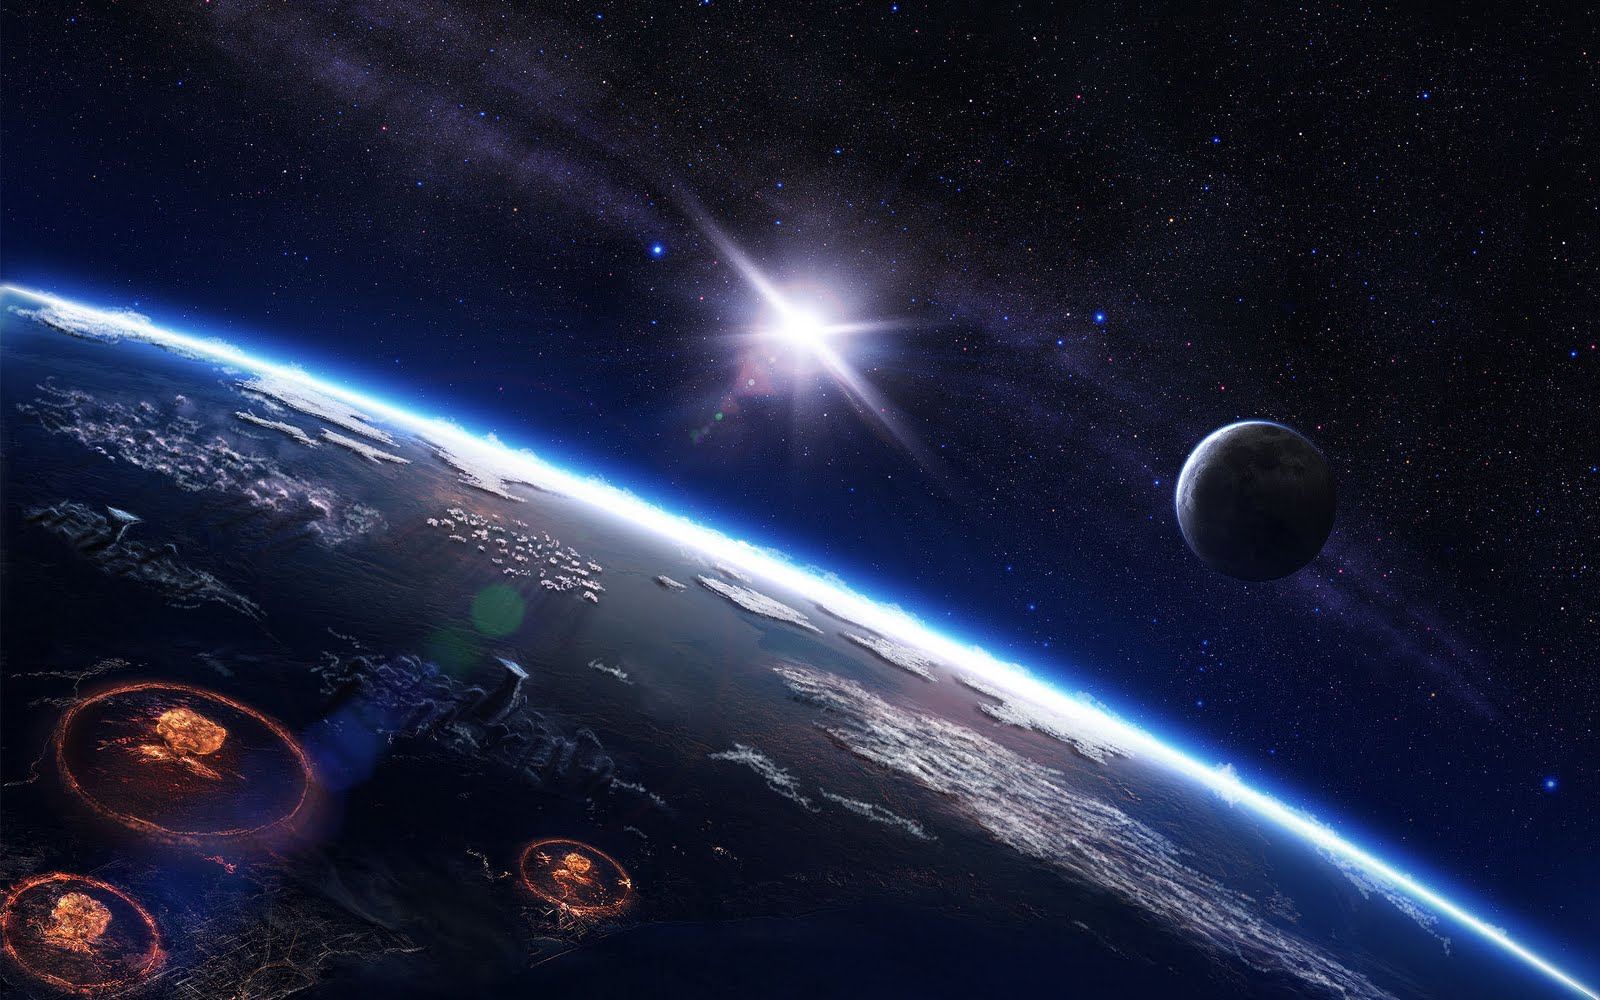 1366 X 768 Real Space Wallpaper